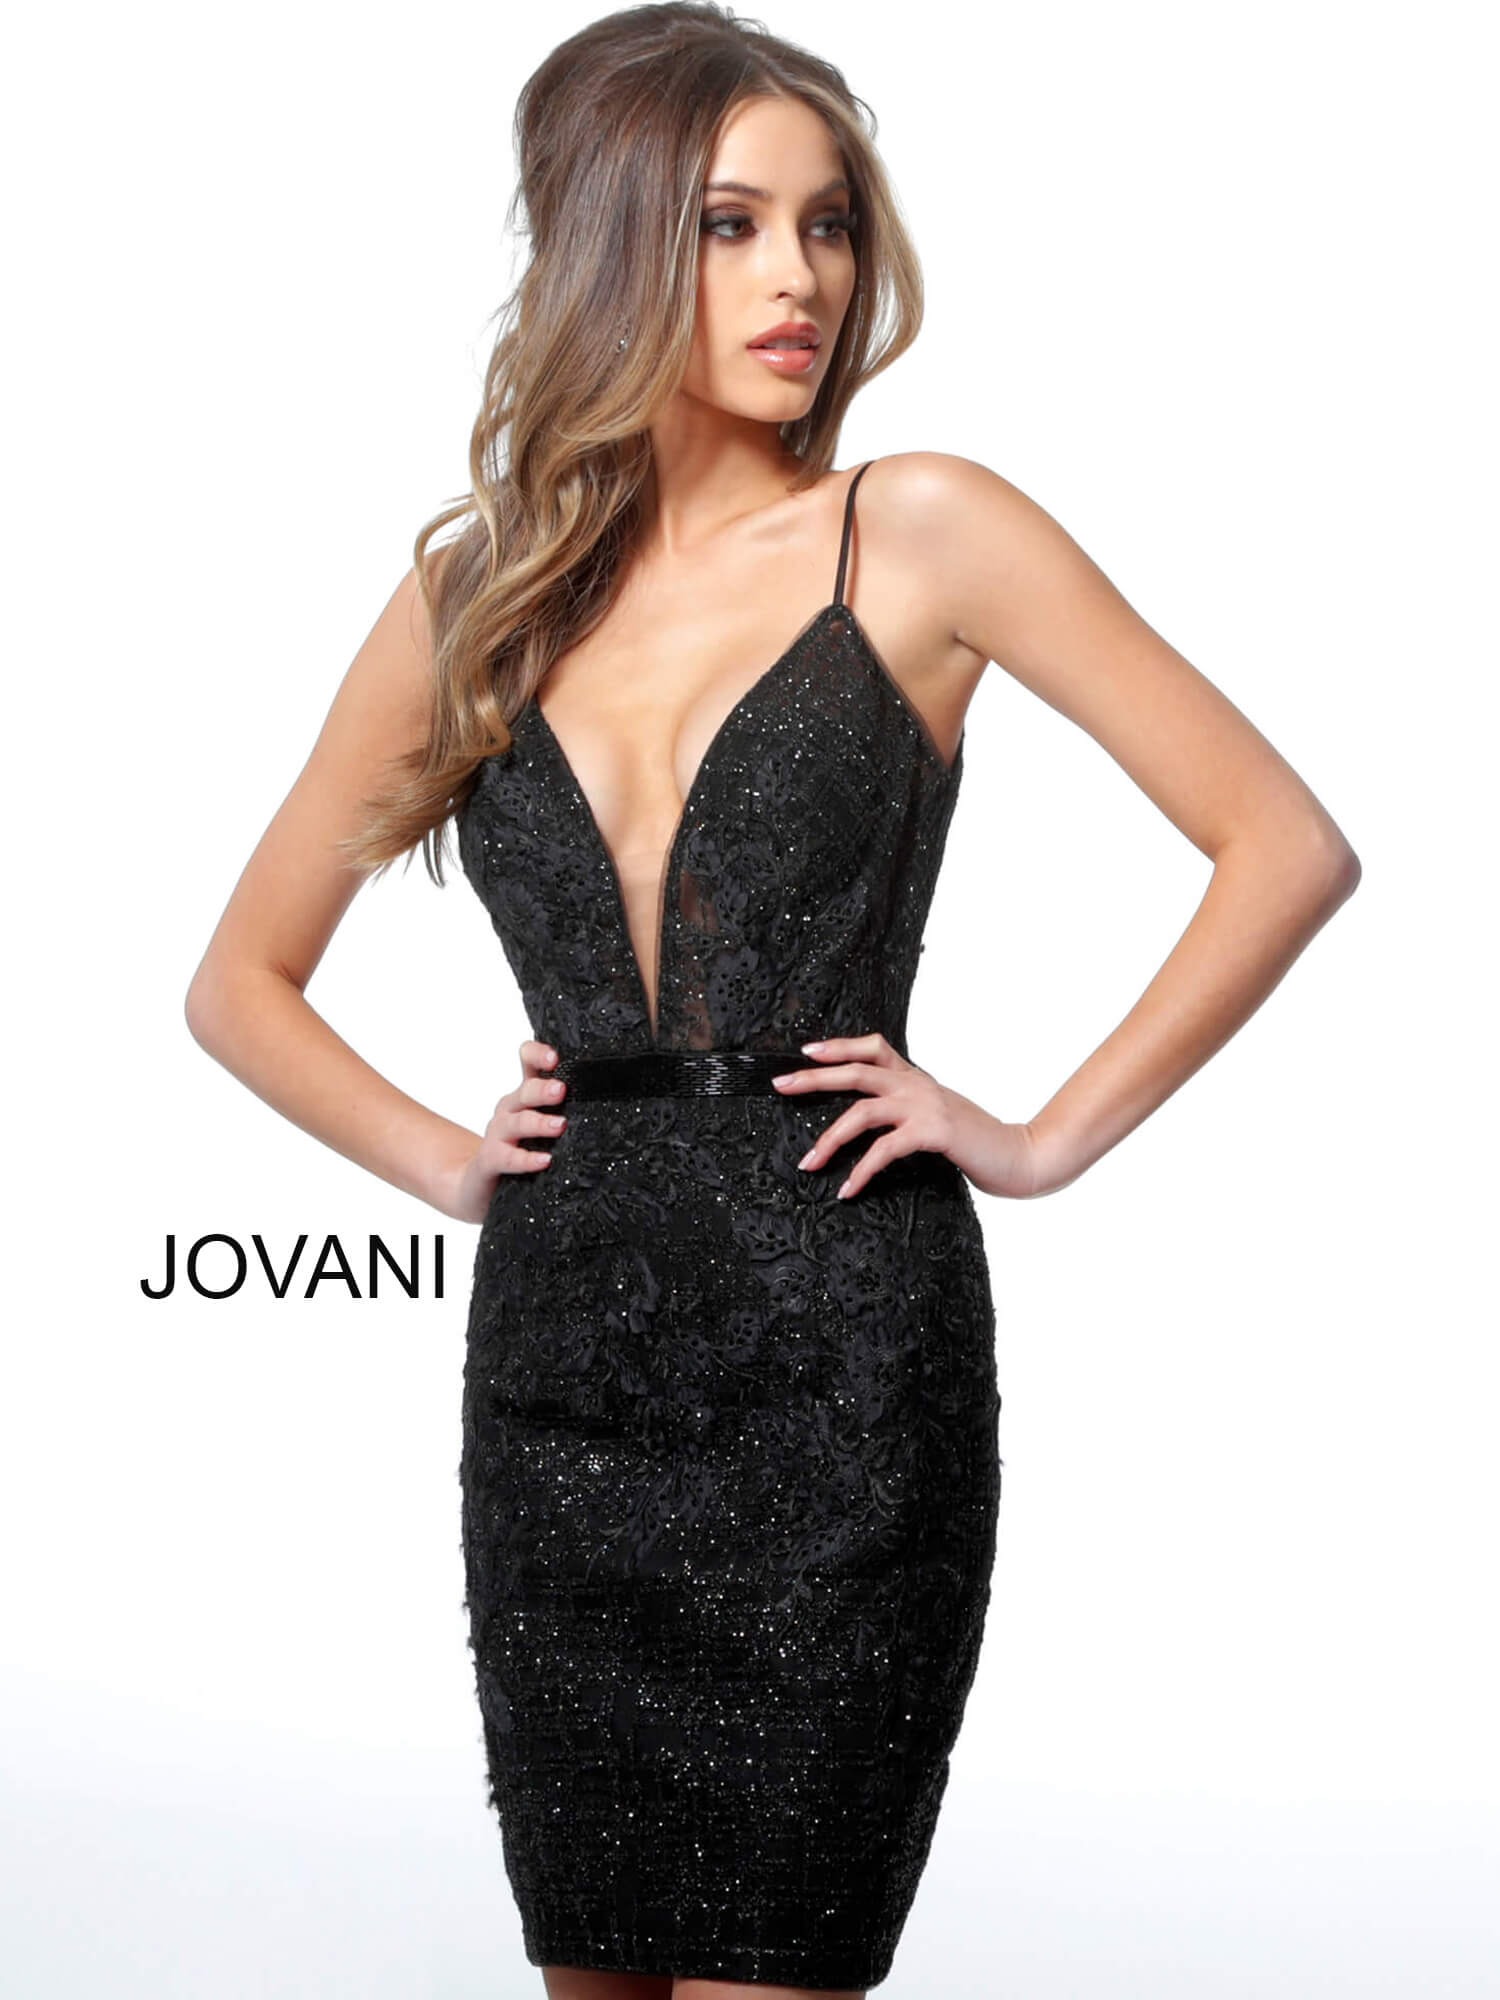 Jovani black fitted plunging neckline cocktail dress 1106